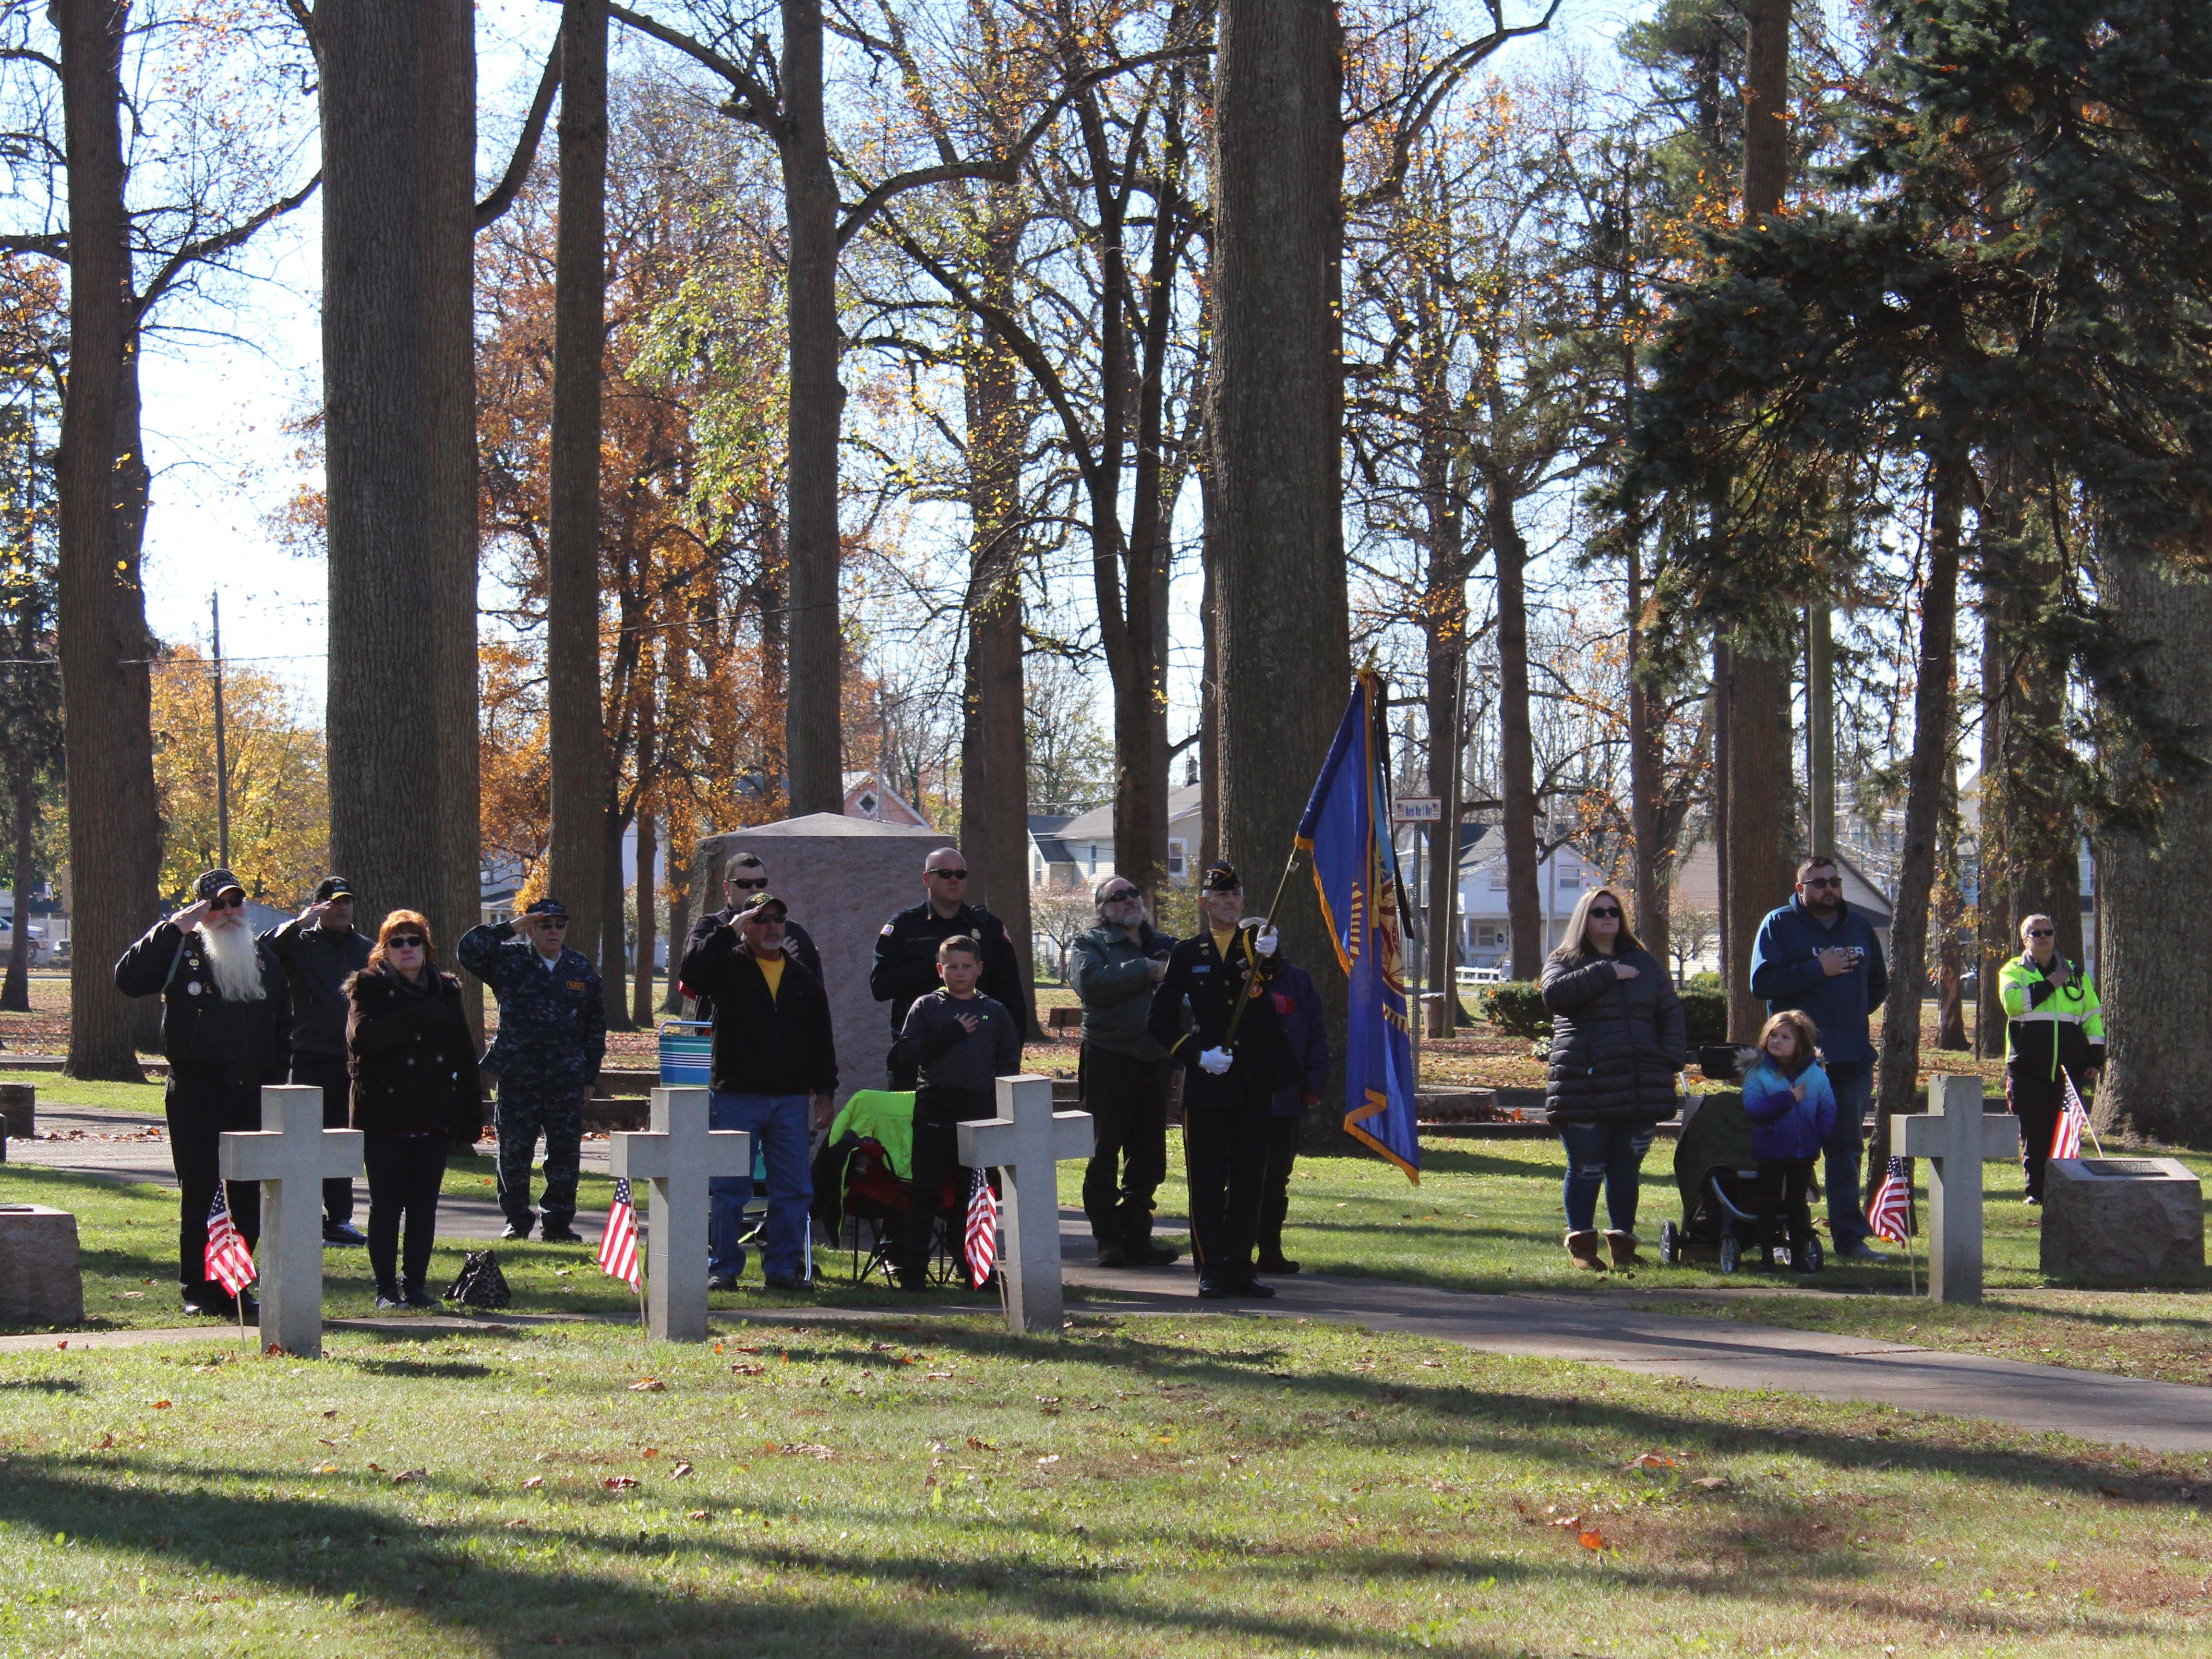 Some of the attendees of the Veterans Day ceremony at Landis Park on Sunday morning stand near the World War I monument during the national anthem.